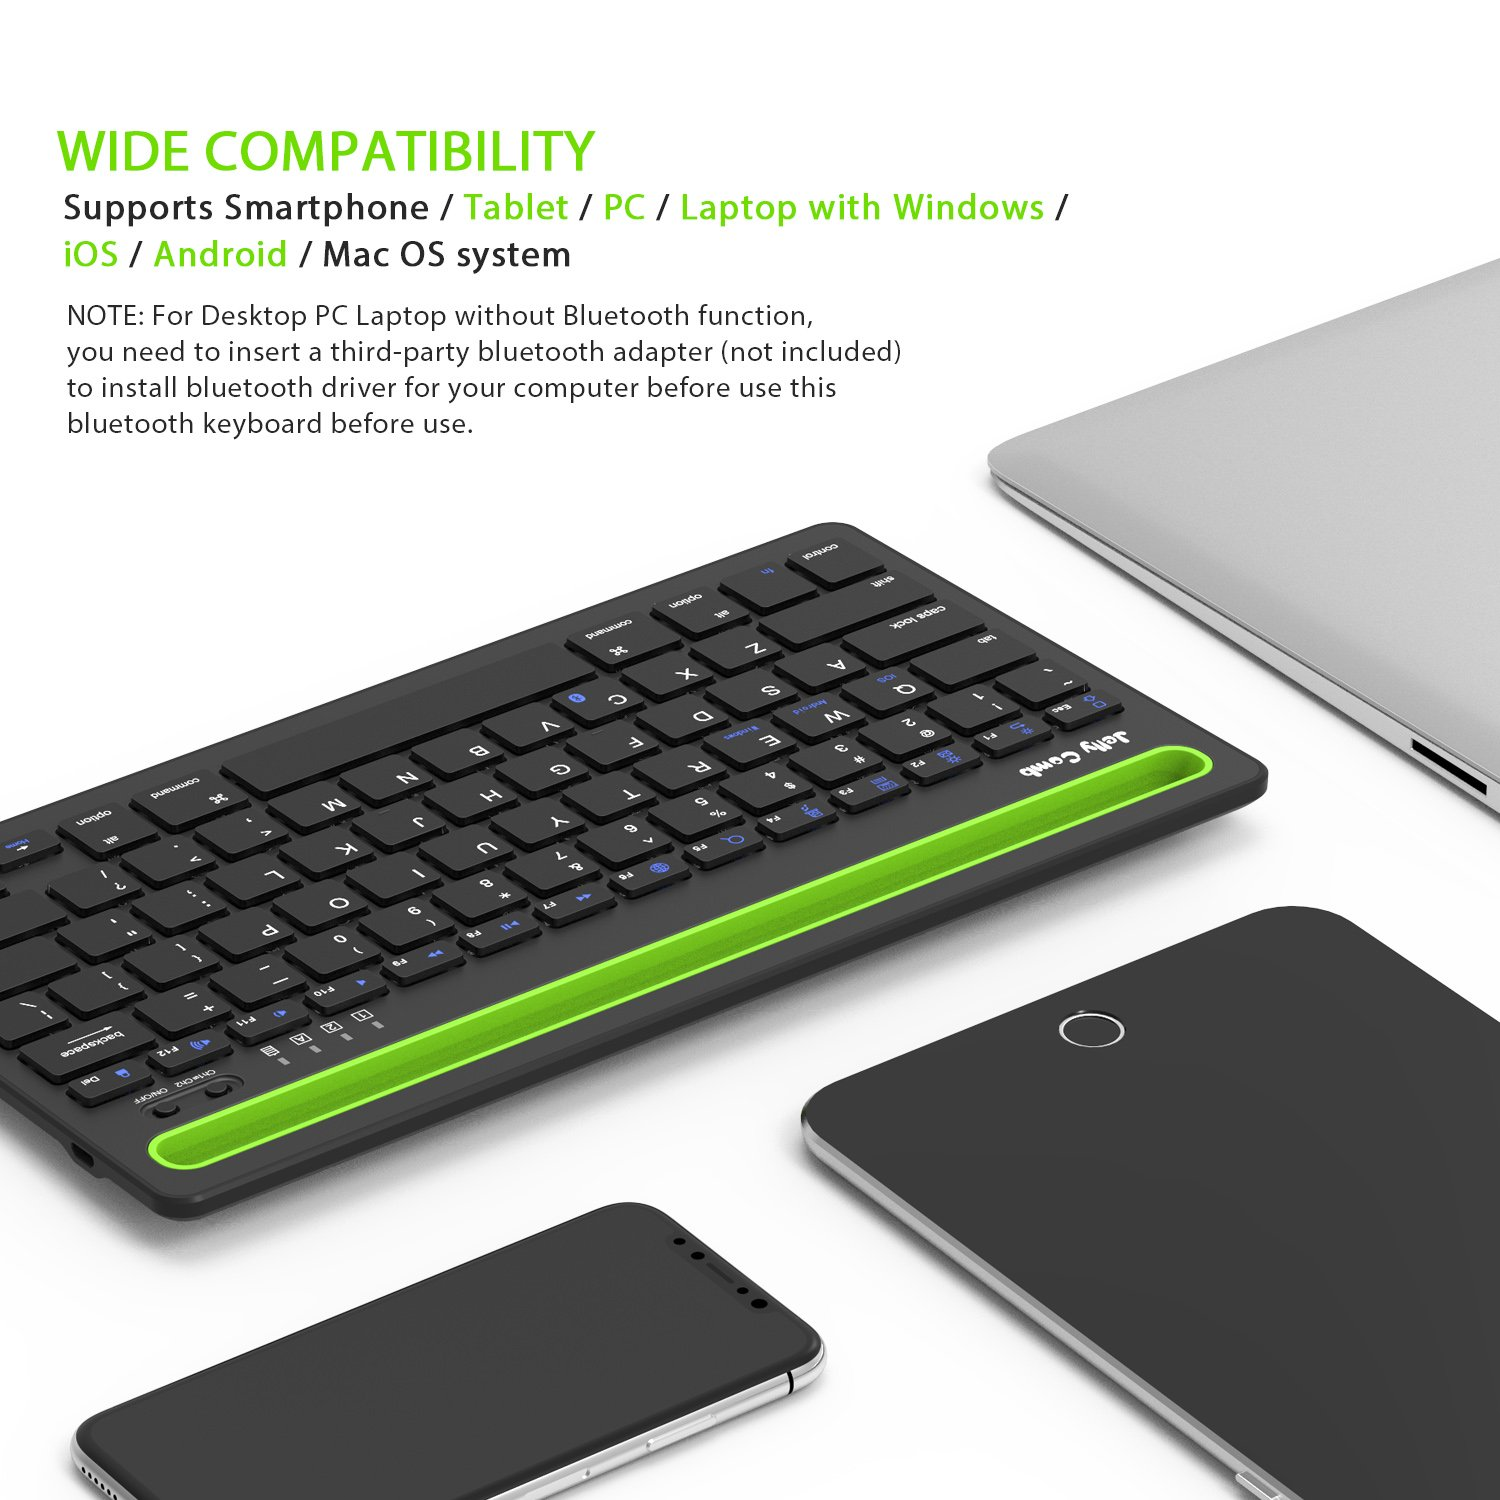 Bluetooth keyboard, Jelly Comb BK230 Dual Channel Multi-device Universal Wireless Bluetooth Keyboard Rechargeable with Sturdy Stand for Tablet Smartphone PC Windows Android iOS Mac (Black and Green) by Jelly Comb (Image #6)